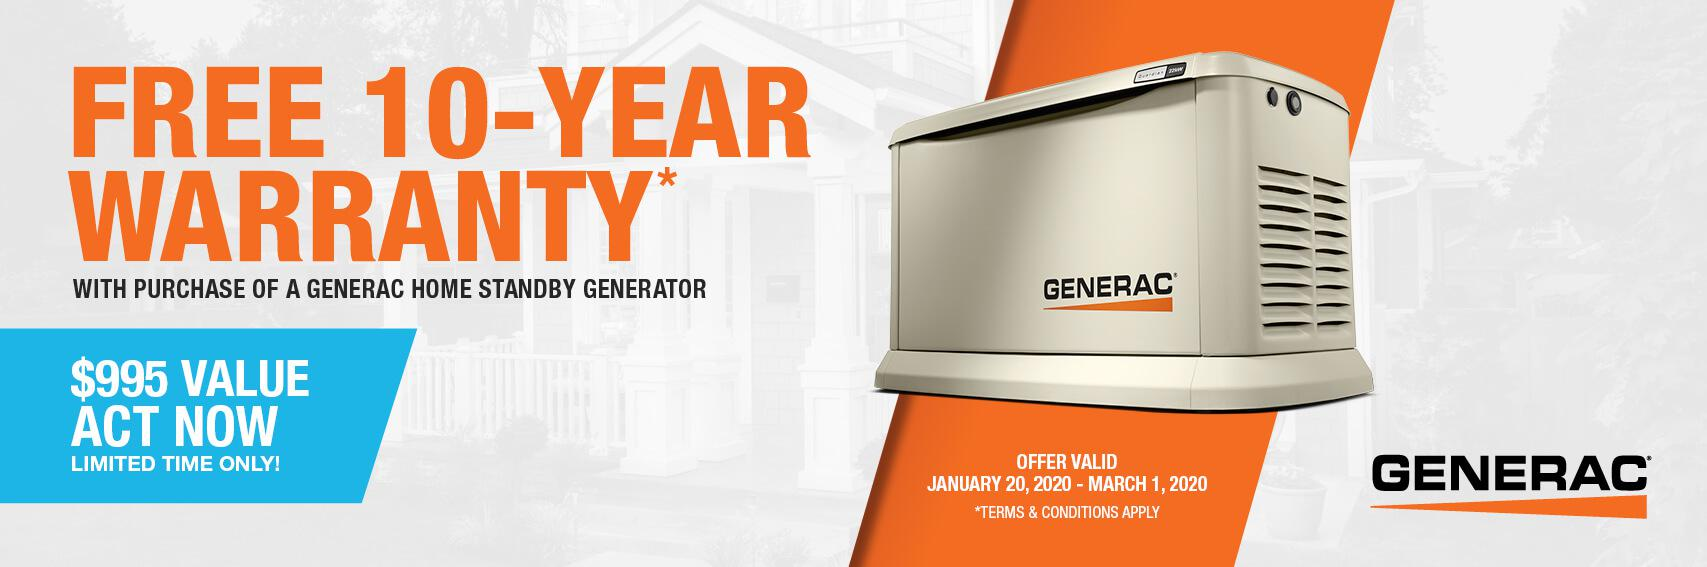 Homestandby Generator Deal | Warranty Offer | Generac Dealer | Colorado Springs, CO